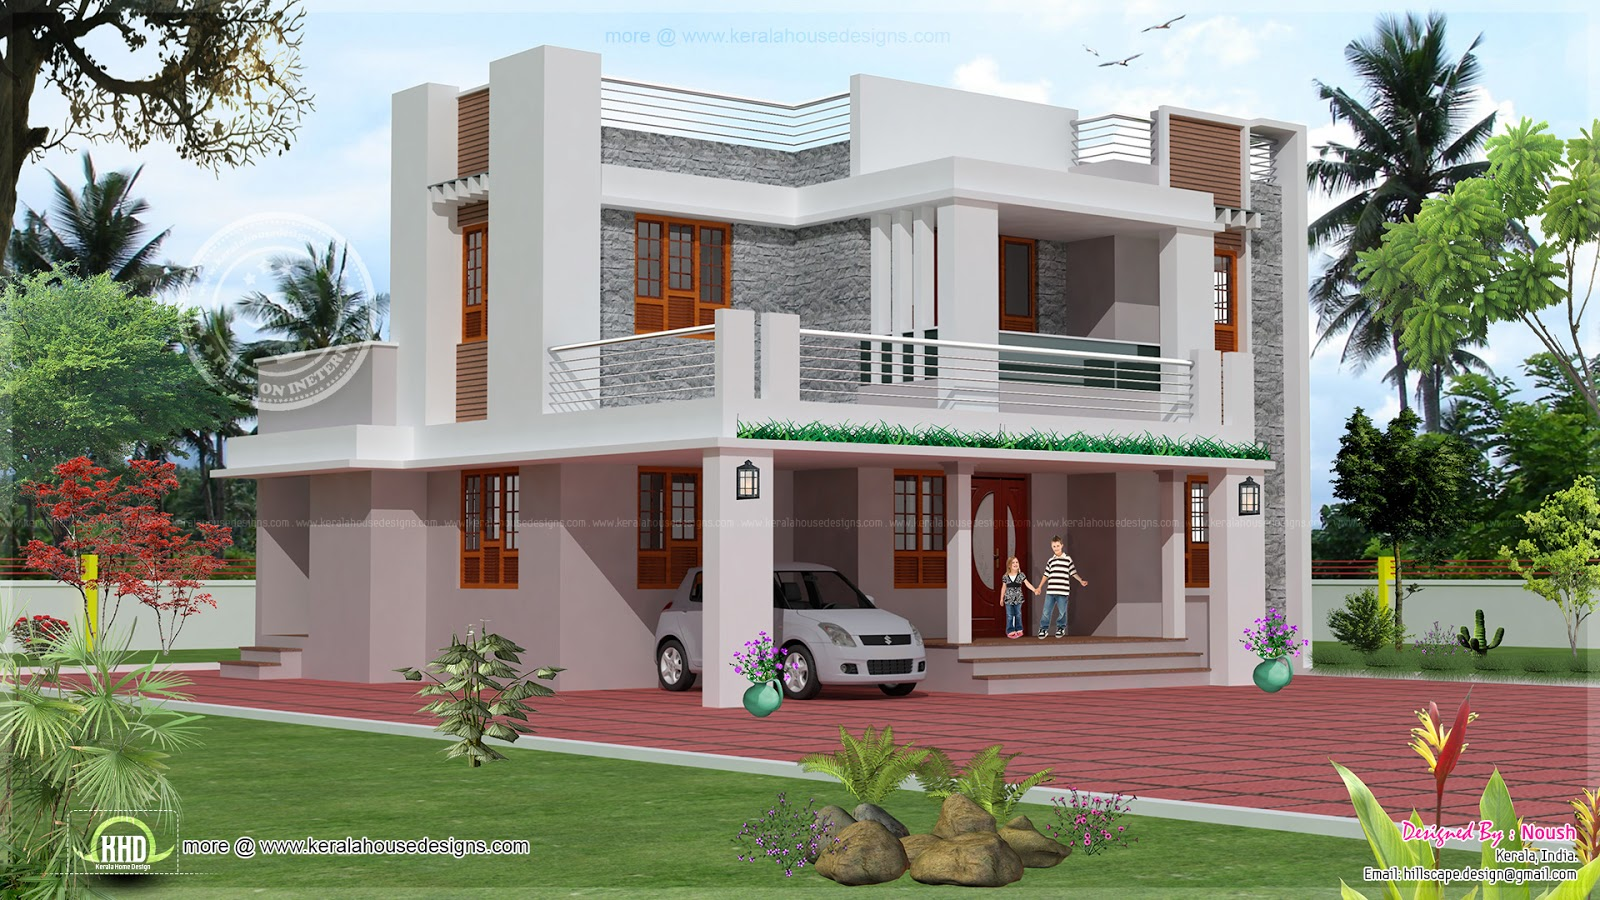 4 bedroom 2 story house exterior design home kerala plans for Home front design model